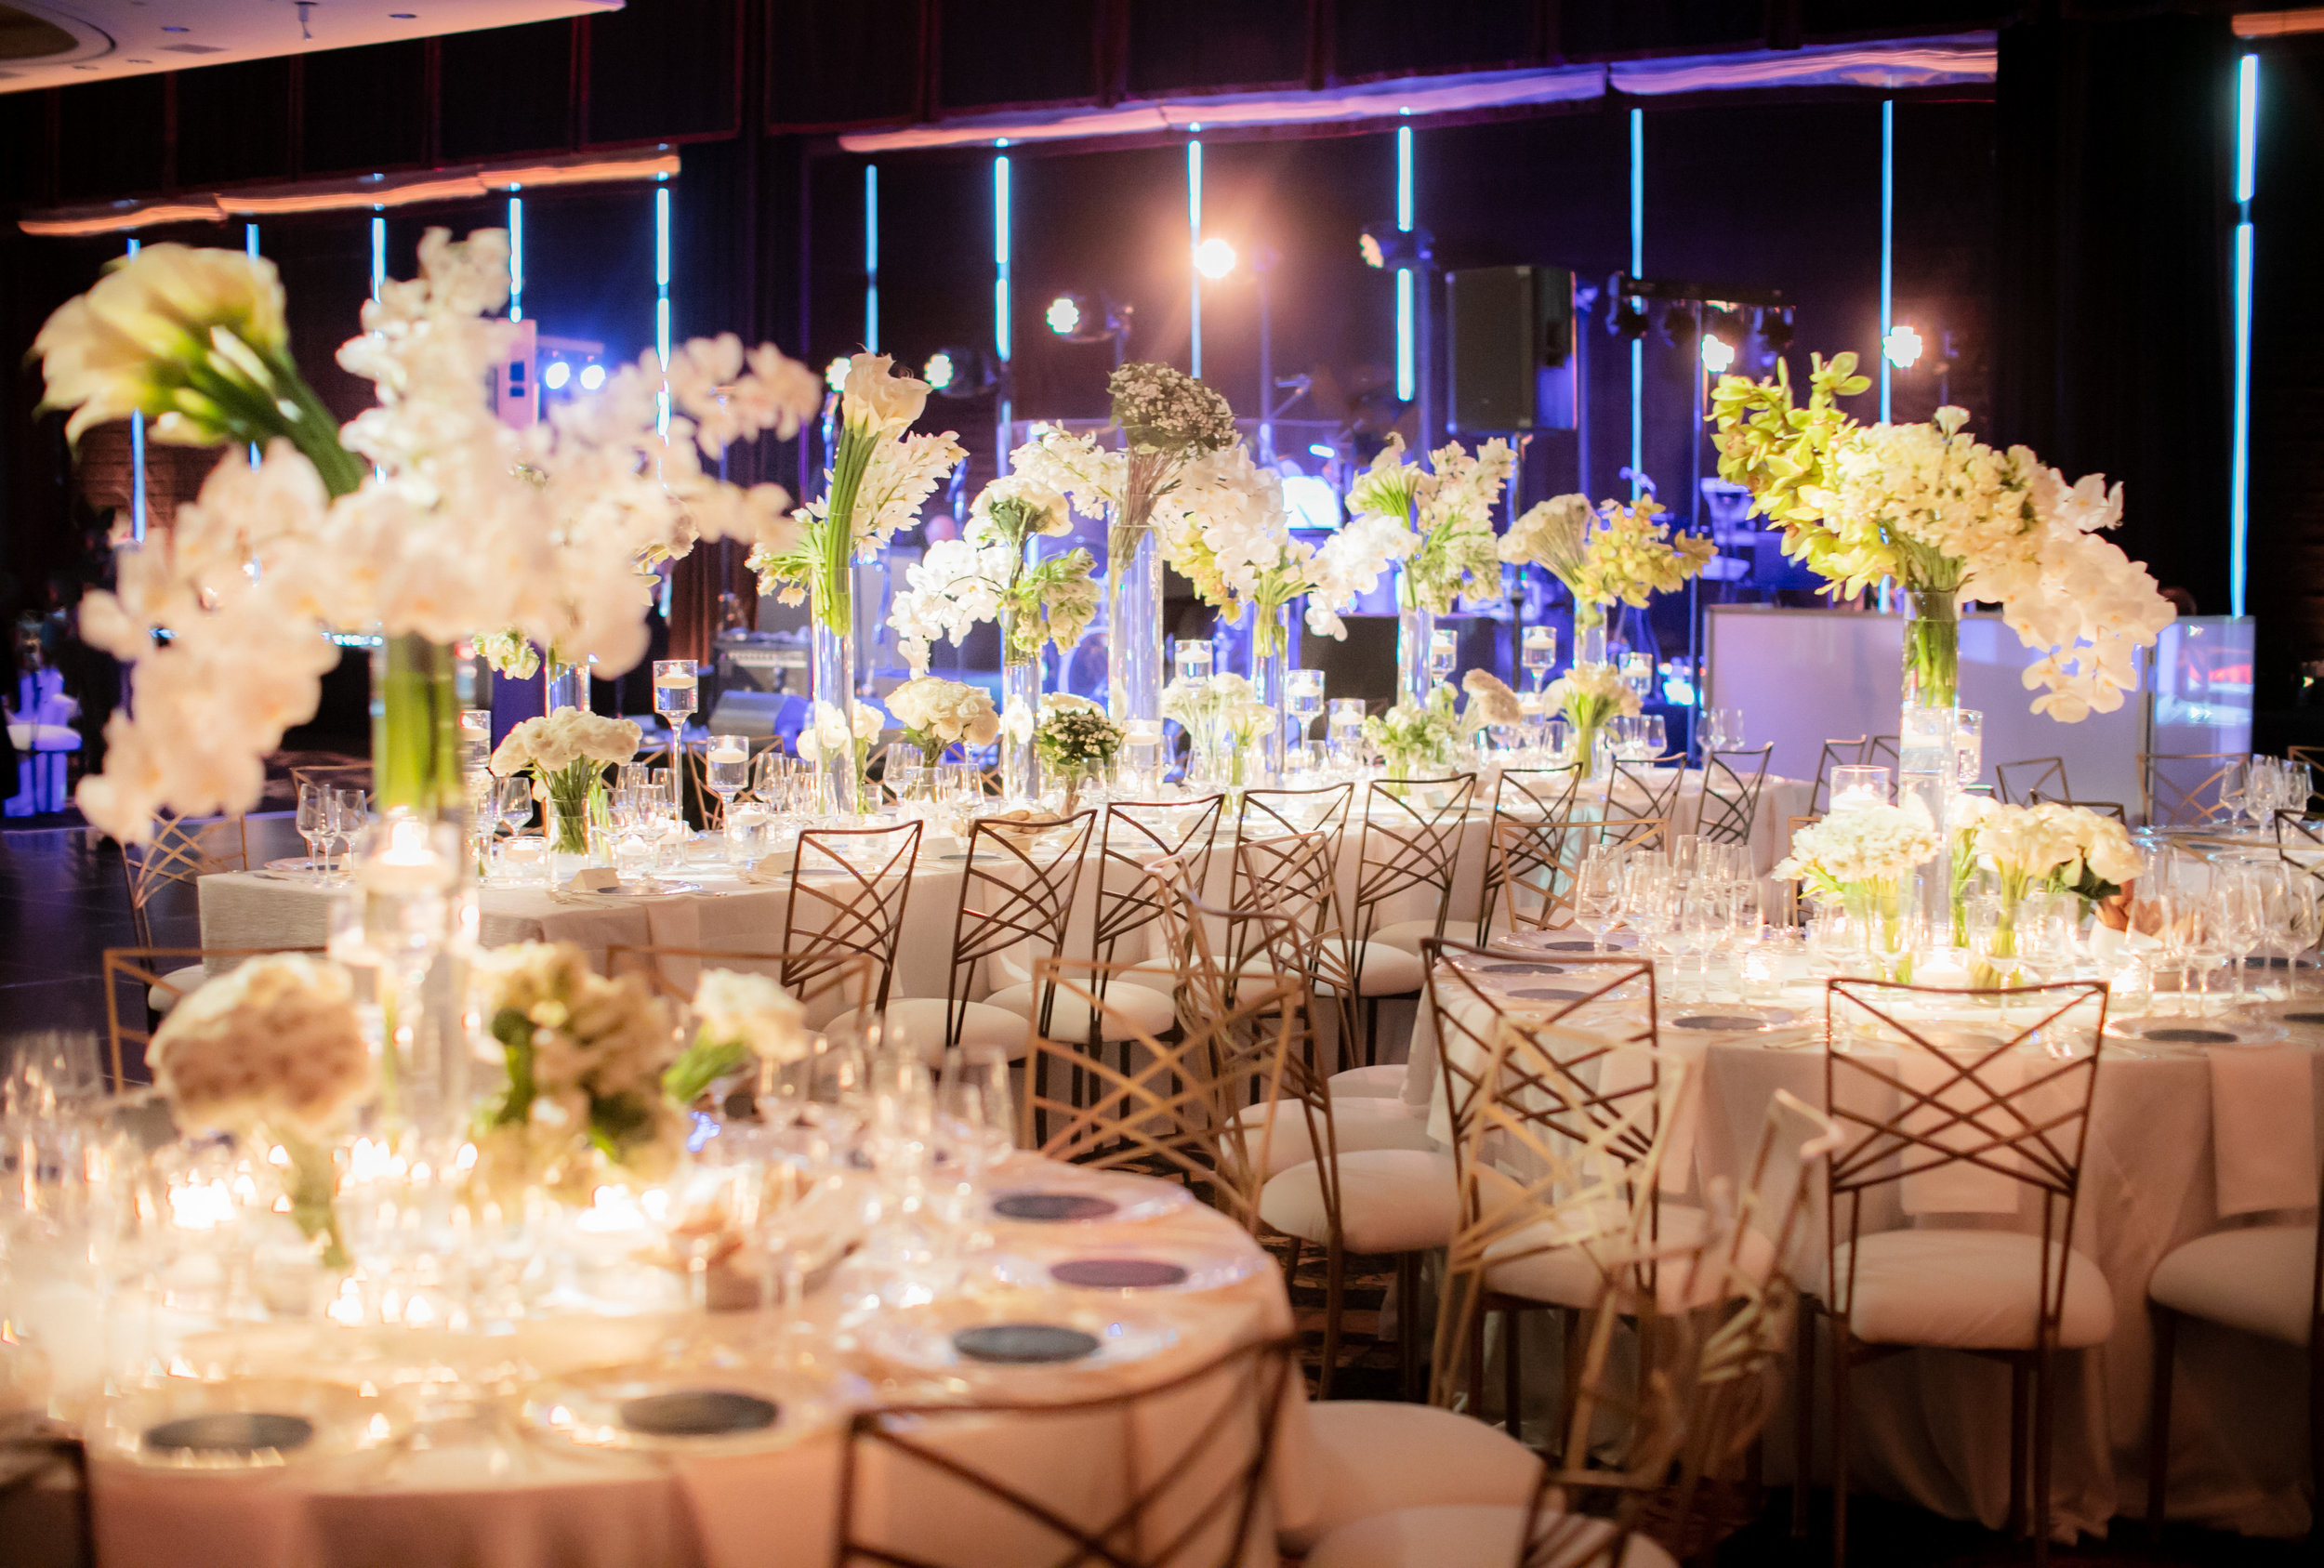 Andrea-Freeman-Events-NY-Wedding-Planner-Mandarin-Oriental-Wedding-13.jpg